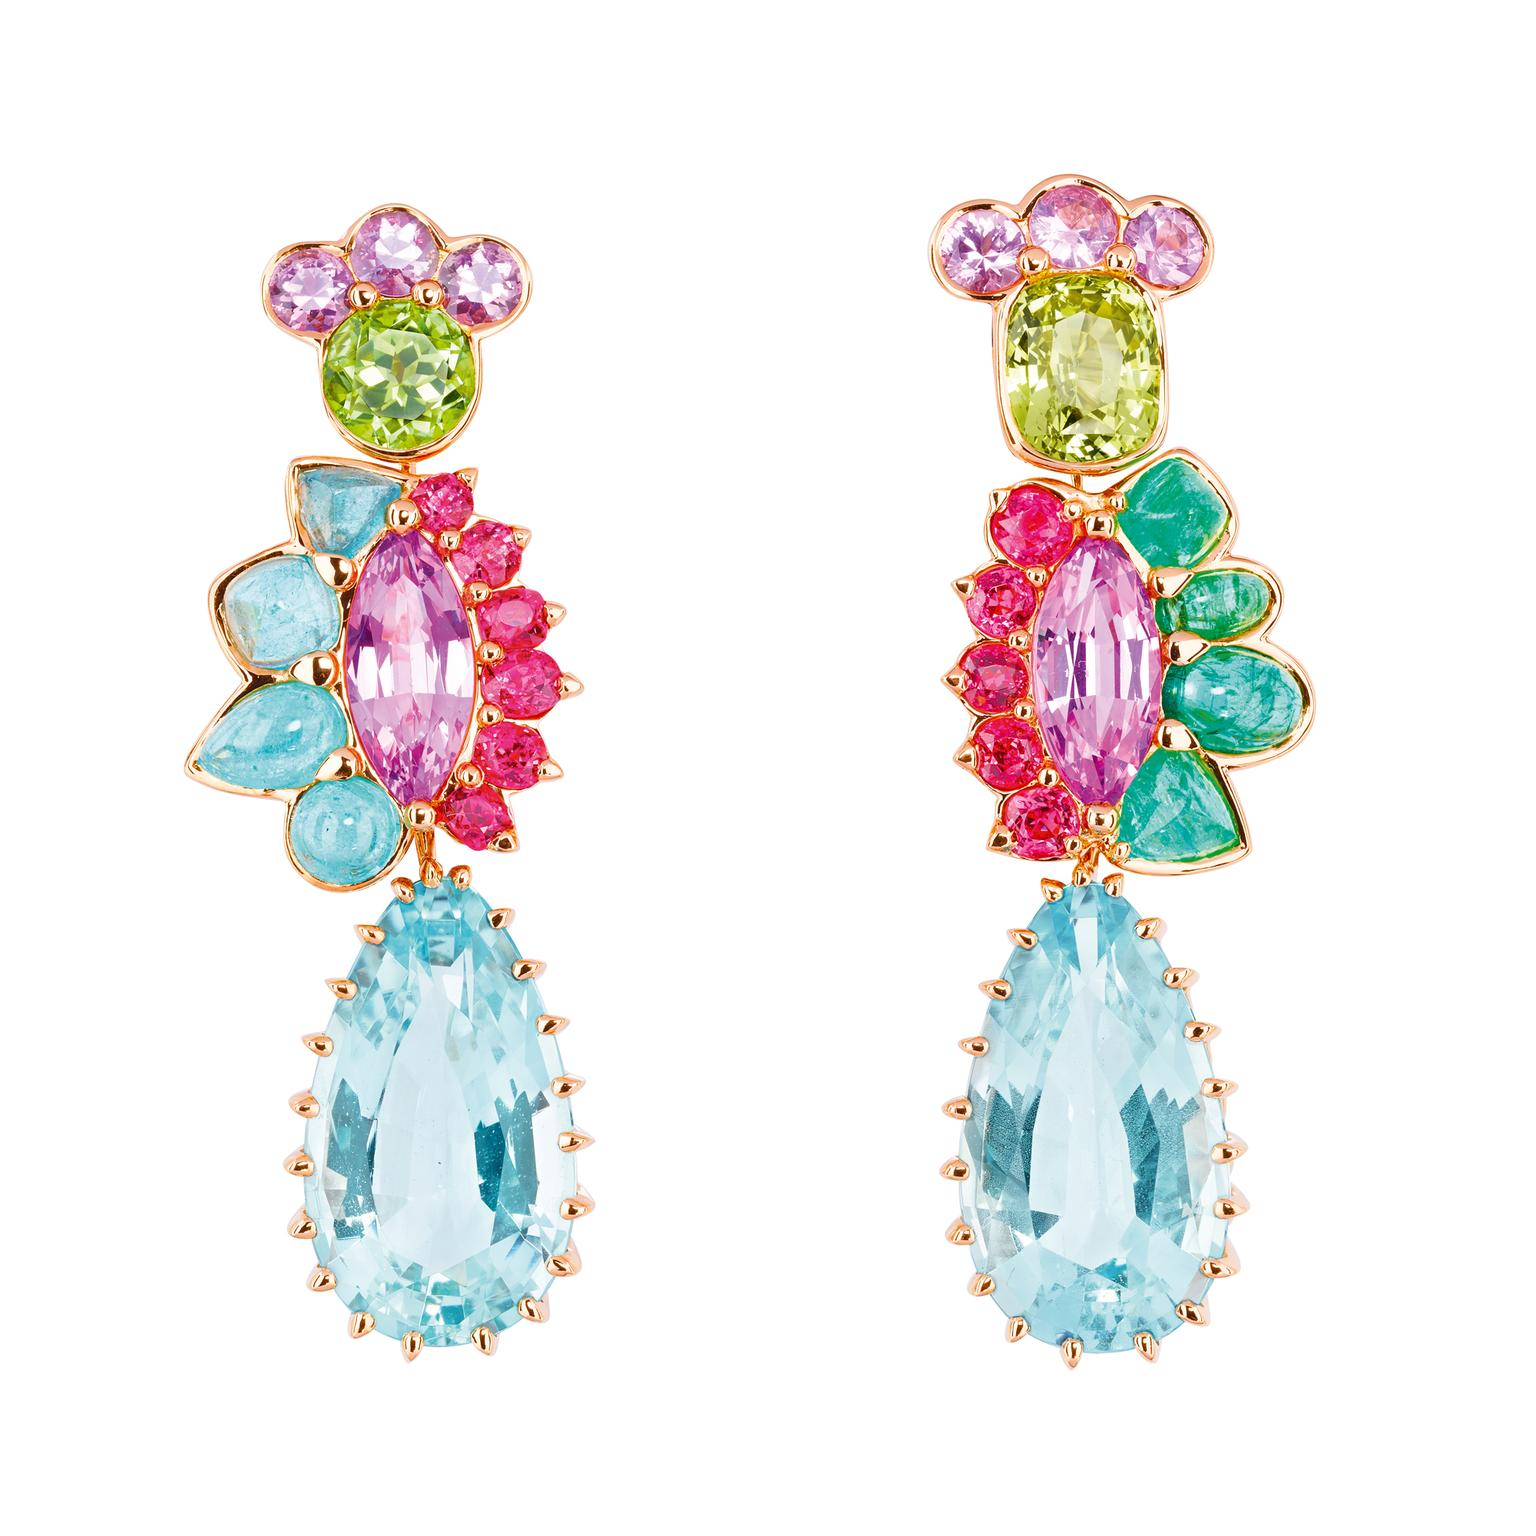 Dior Granville Aigue marine earrings